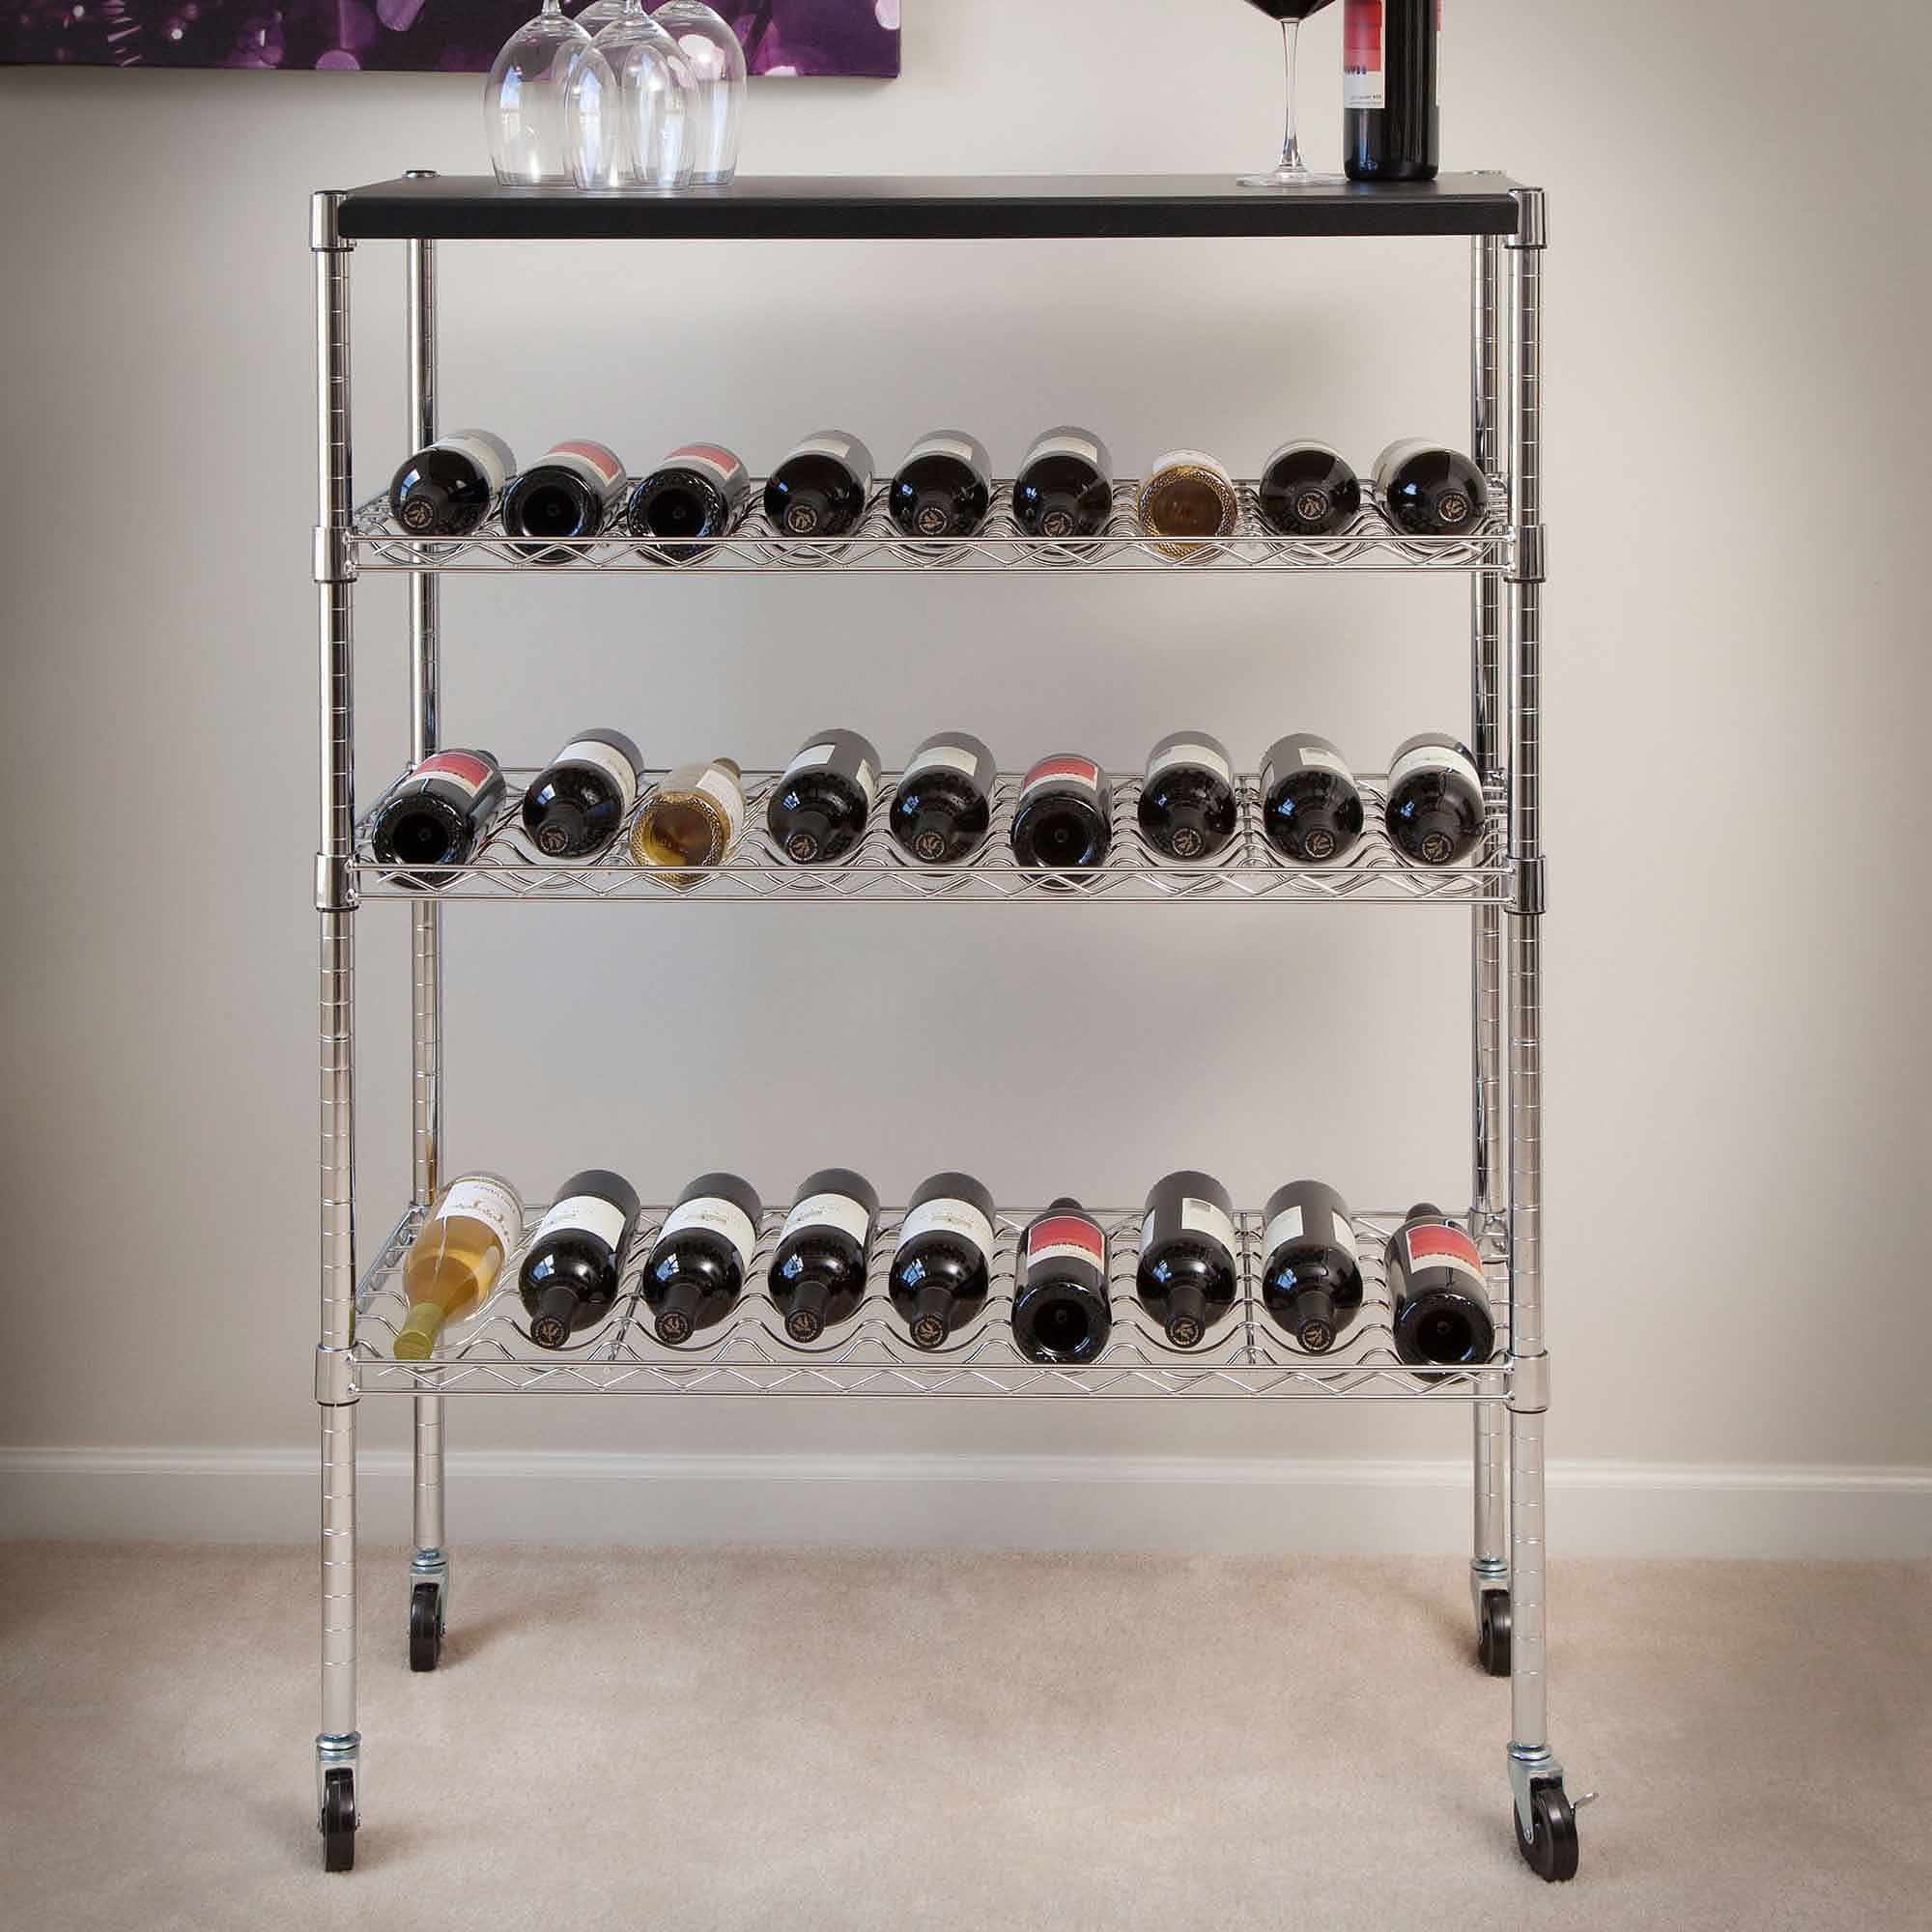 Lavish Home Rolling Chrome Wine Rack Cart Portable Bar by Trademark Global LLC